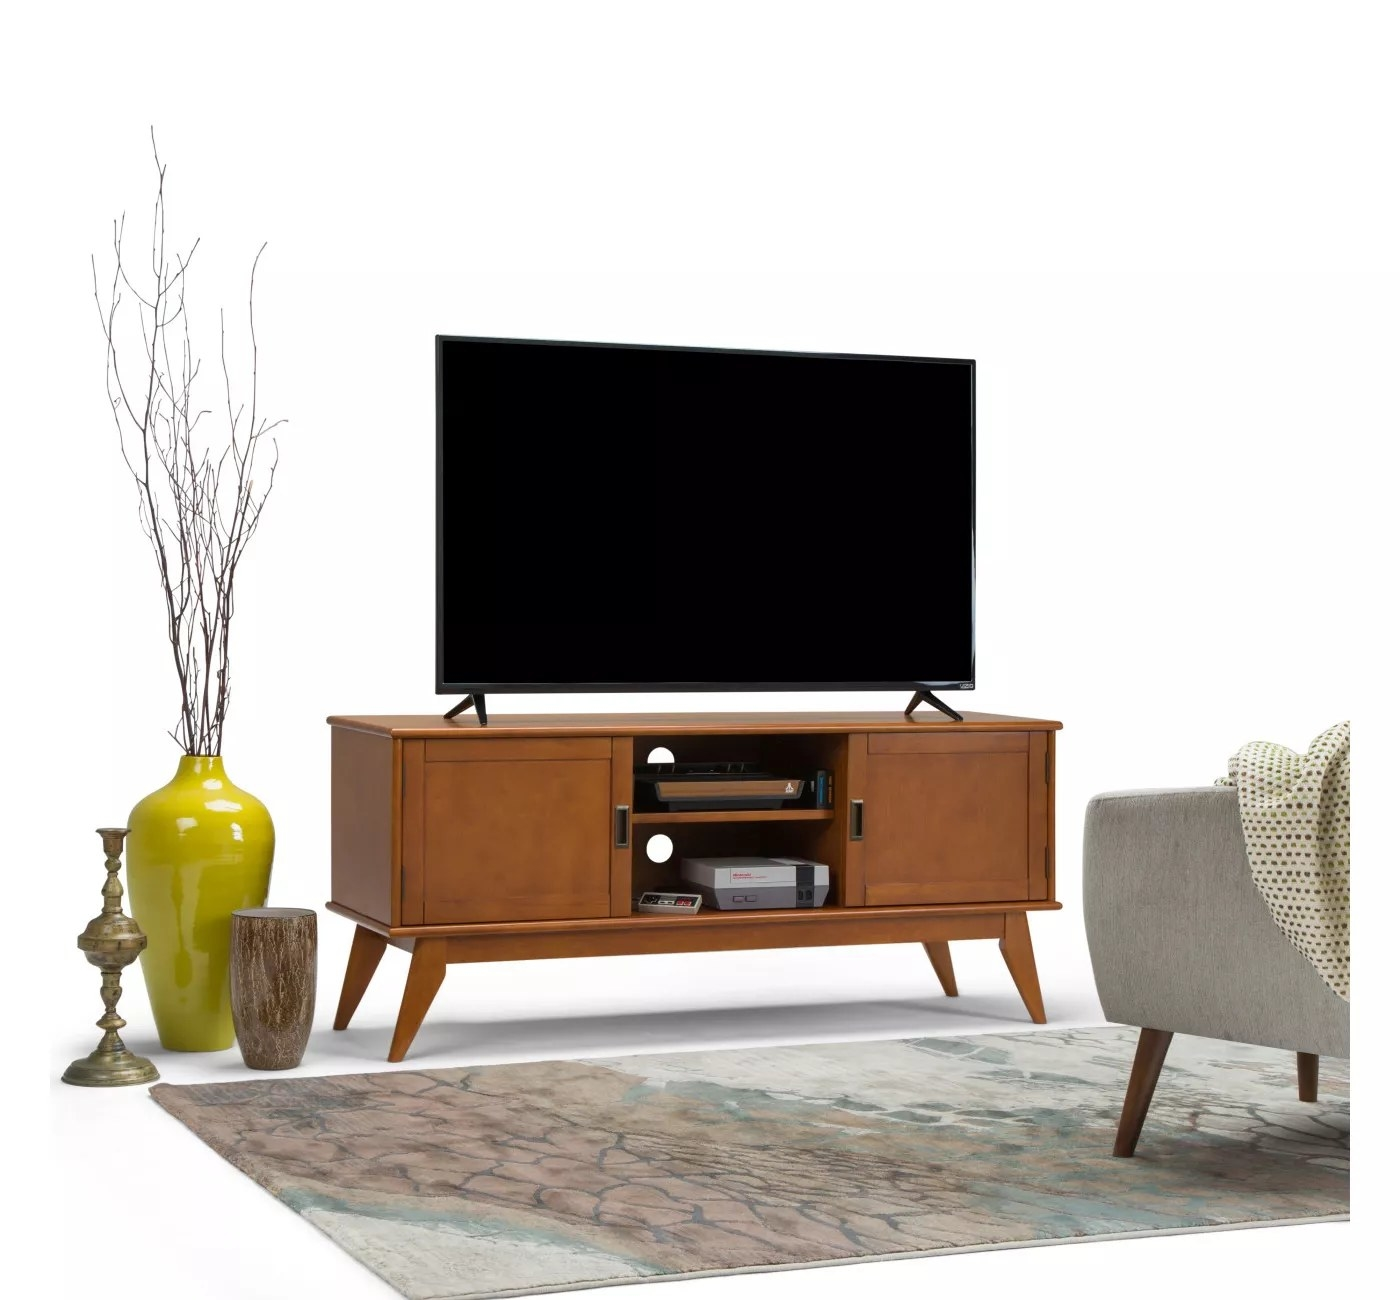 The wooden TV console